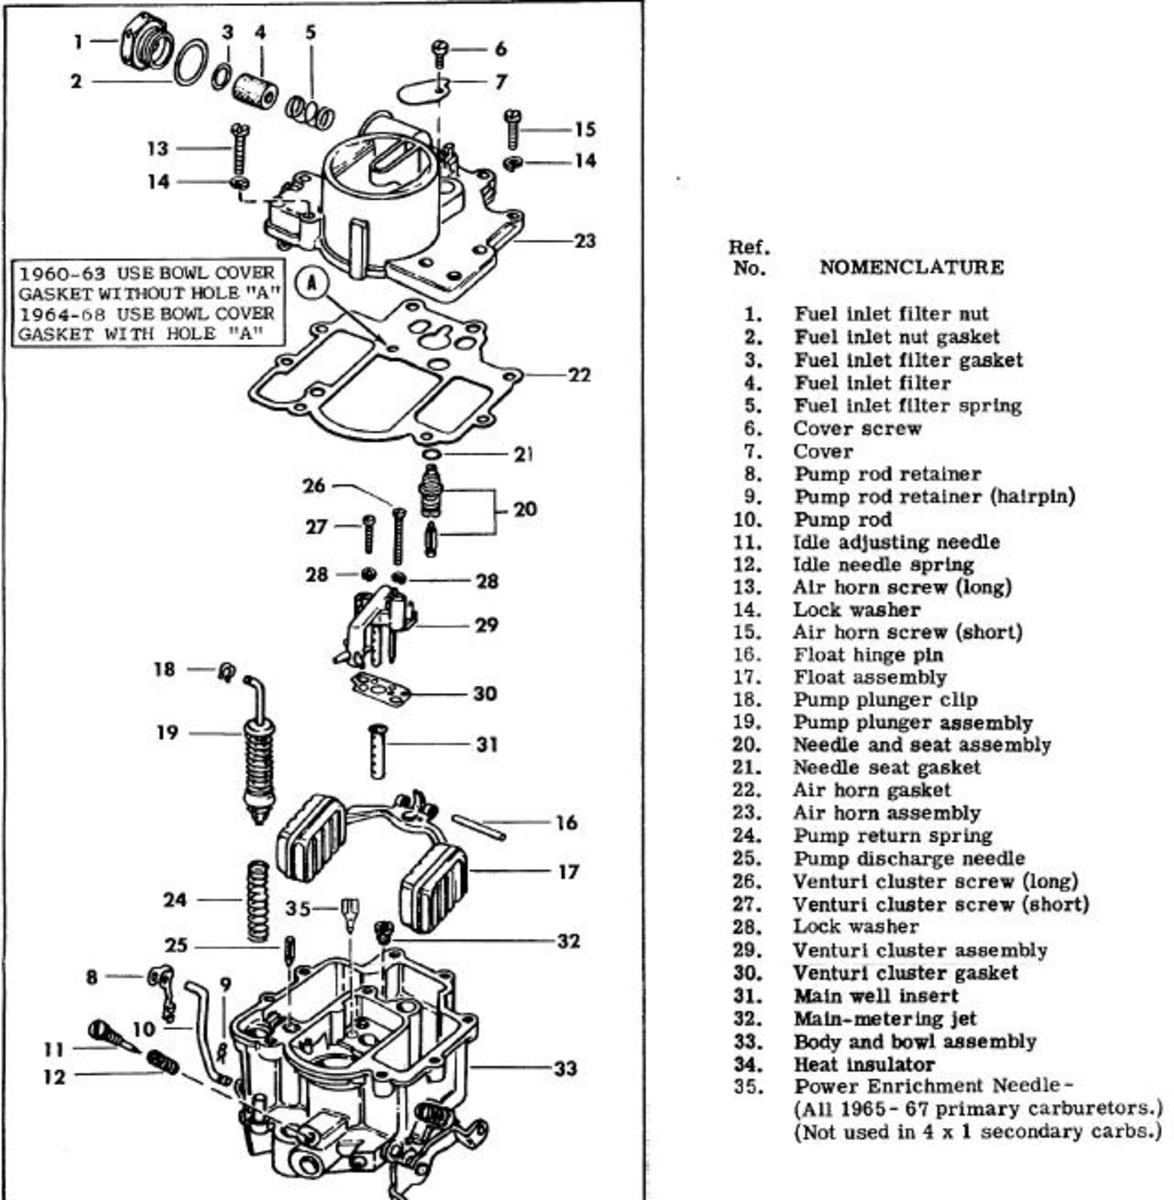 Cleaning the Chevrolet Corvair Carburetor - AxleAddict - A community of car  lovers, enthusiasts, and mechanics sharing our auto adviceAxleAddict